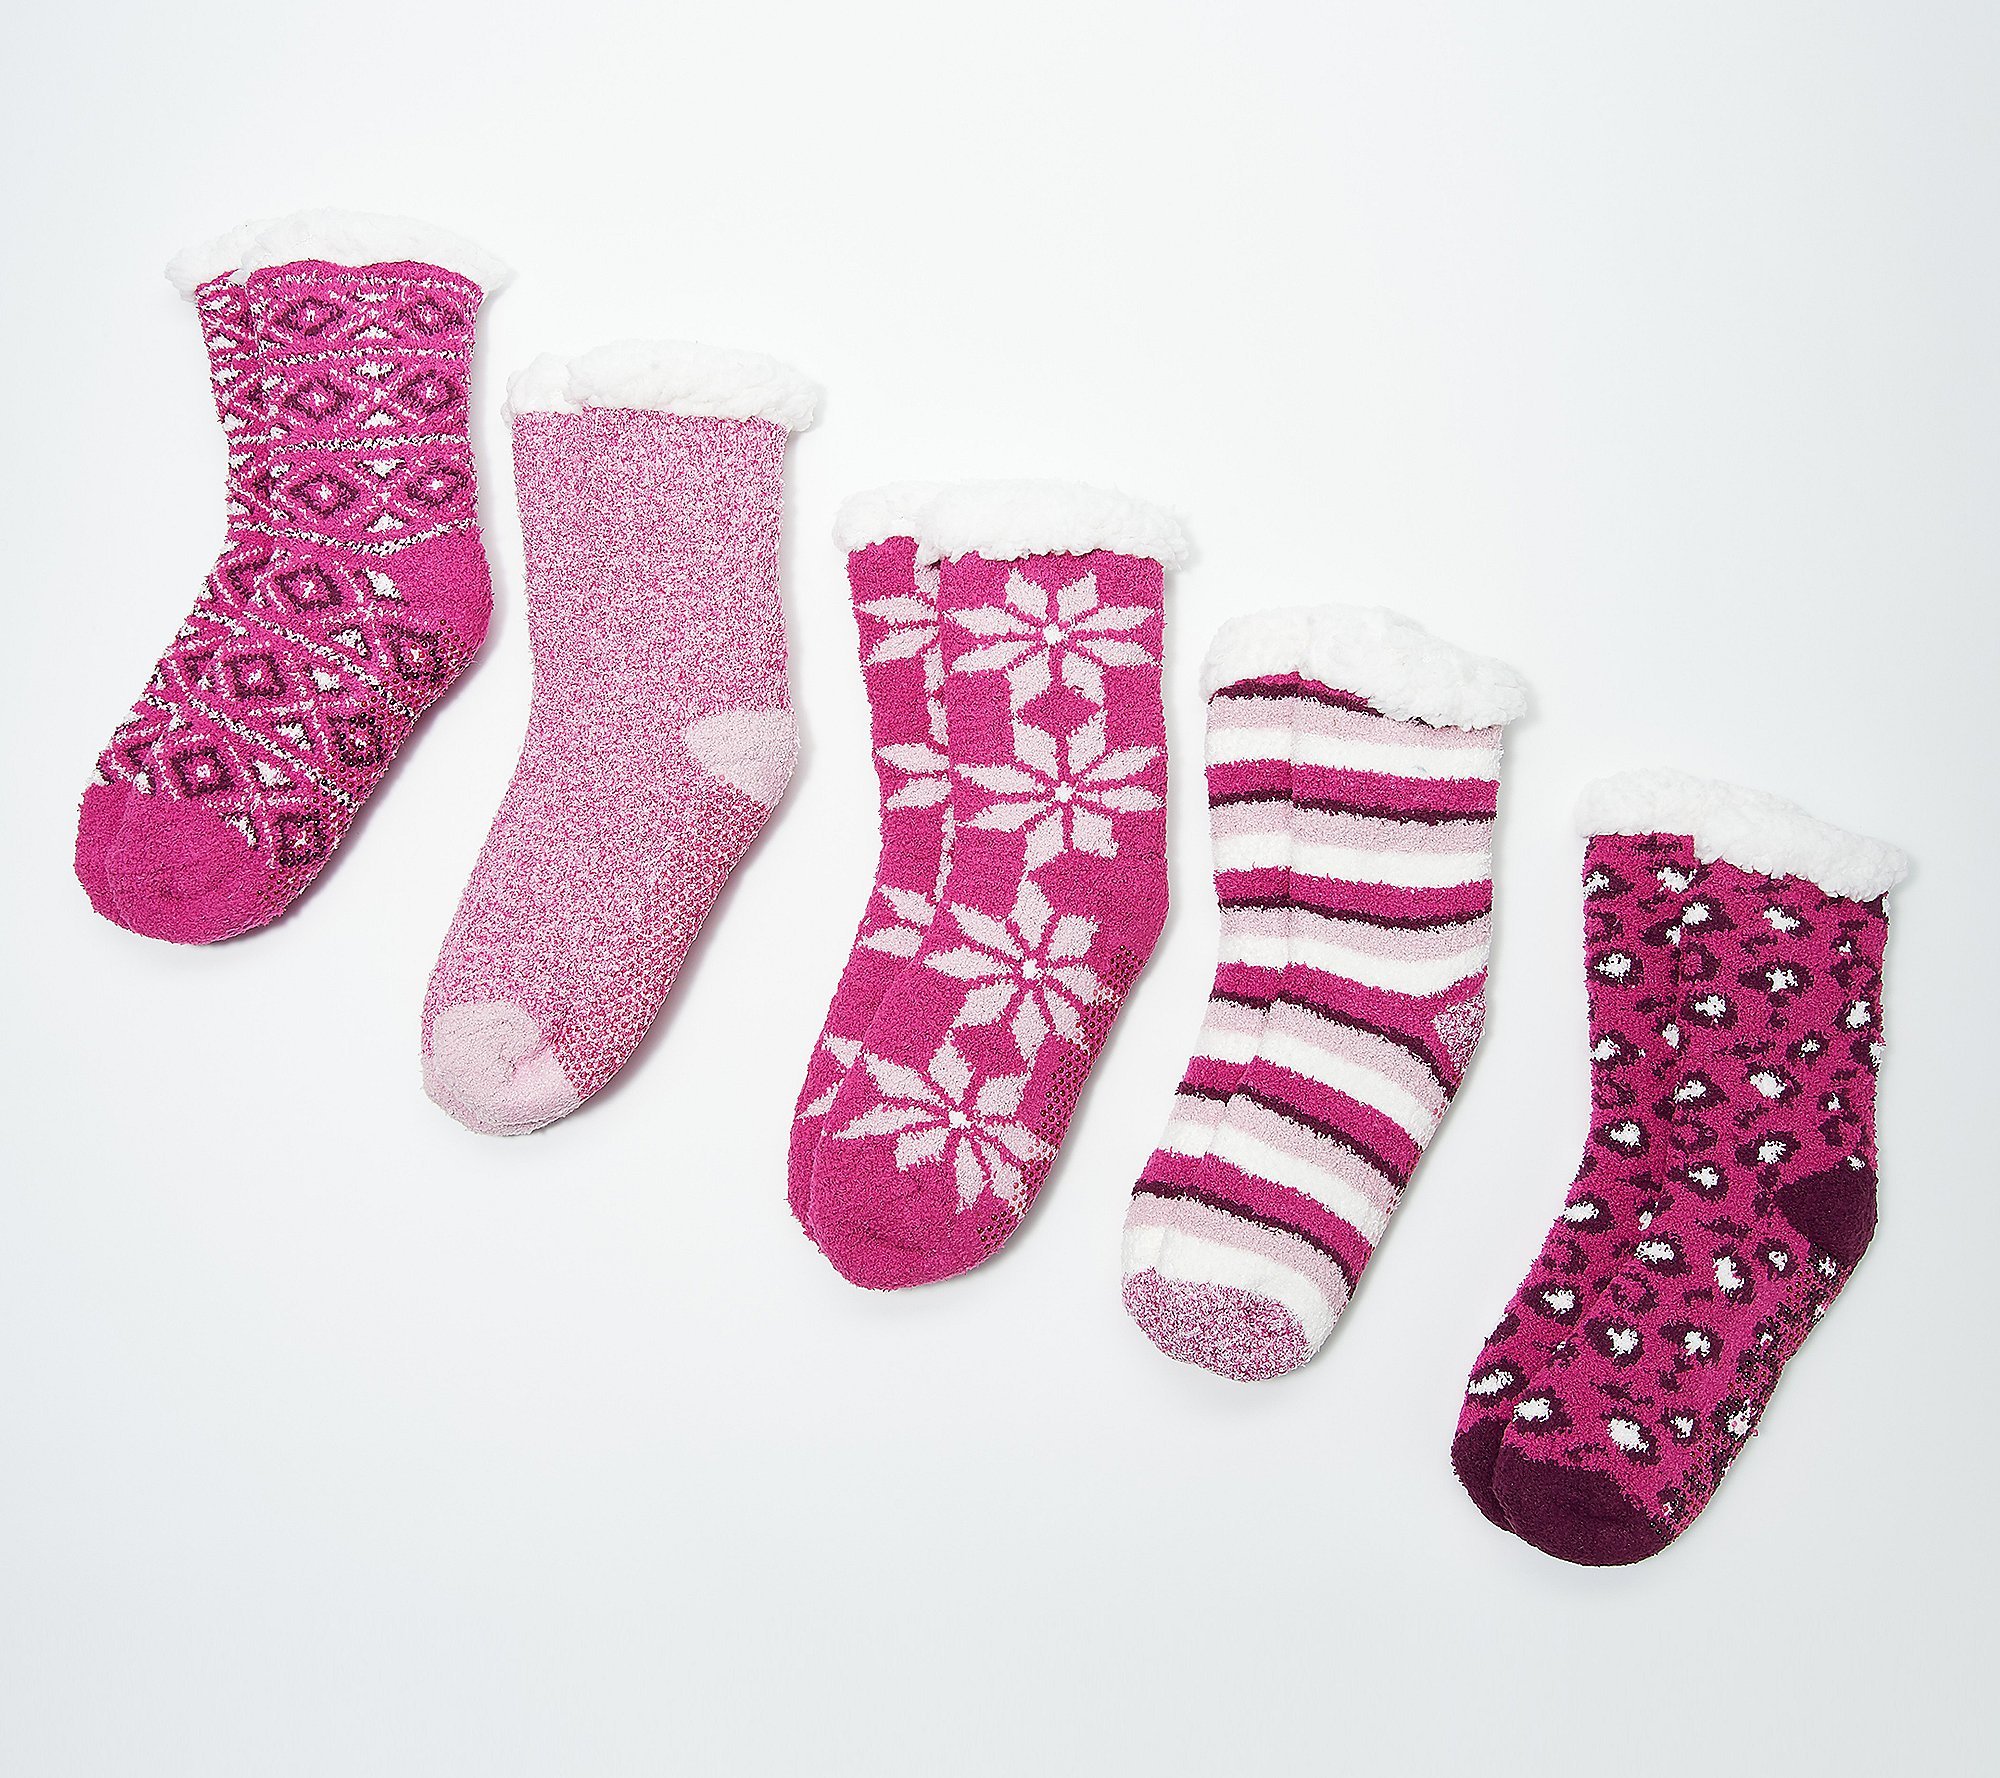 Set of 5 Cuddl Duds Faux Sherpa Cozy Lined Socks